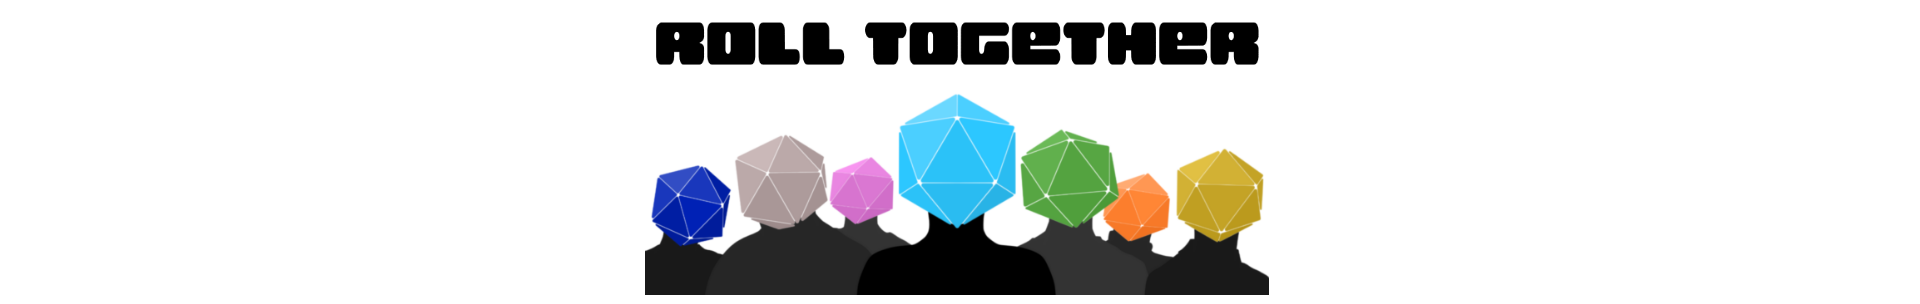 roll together logo